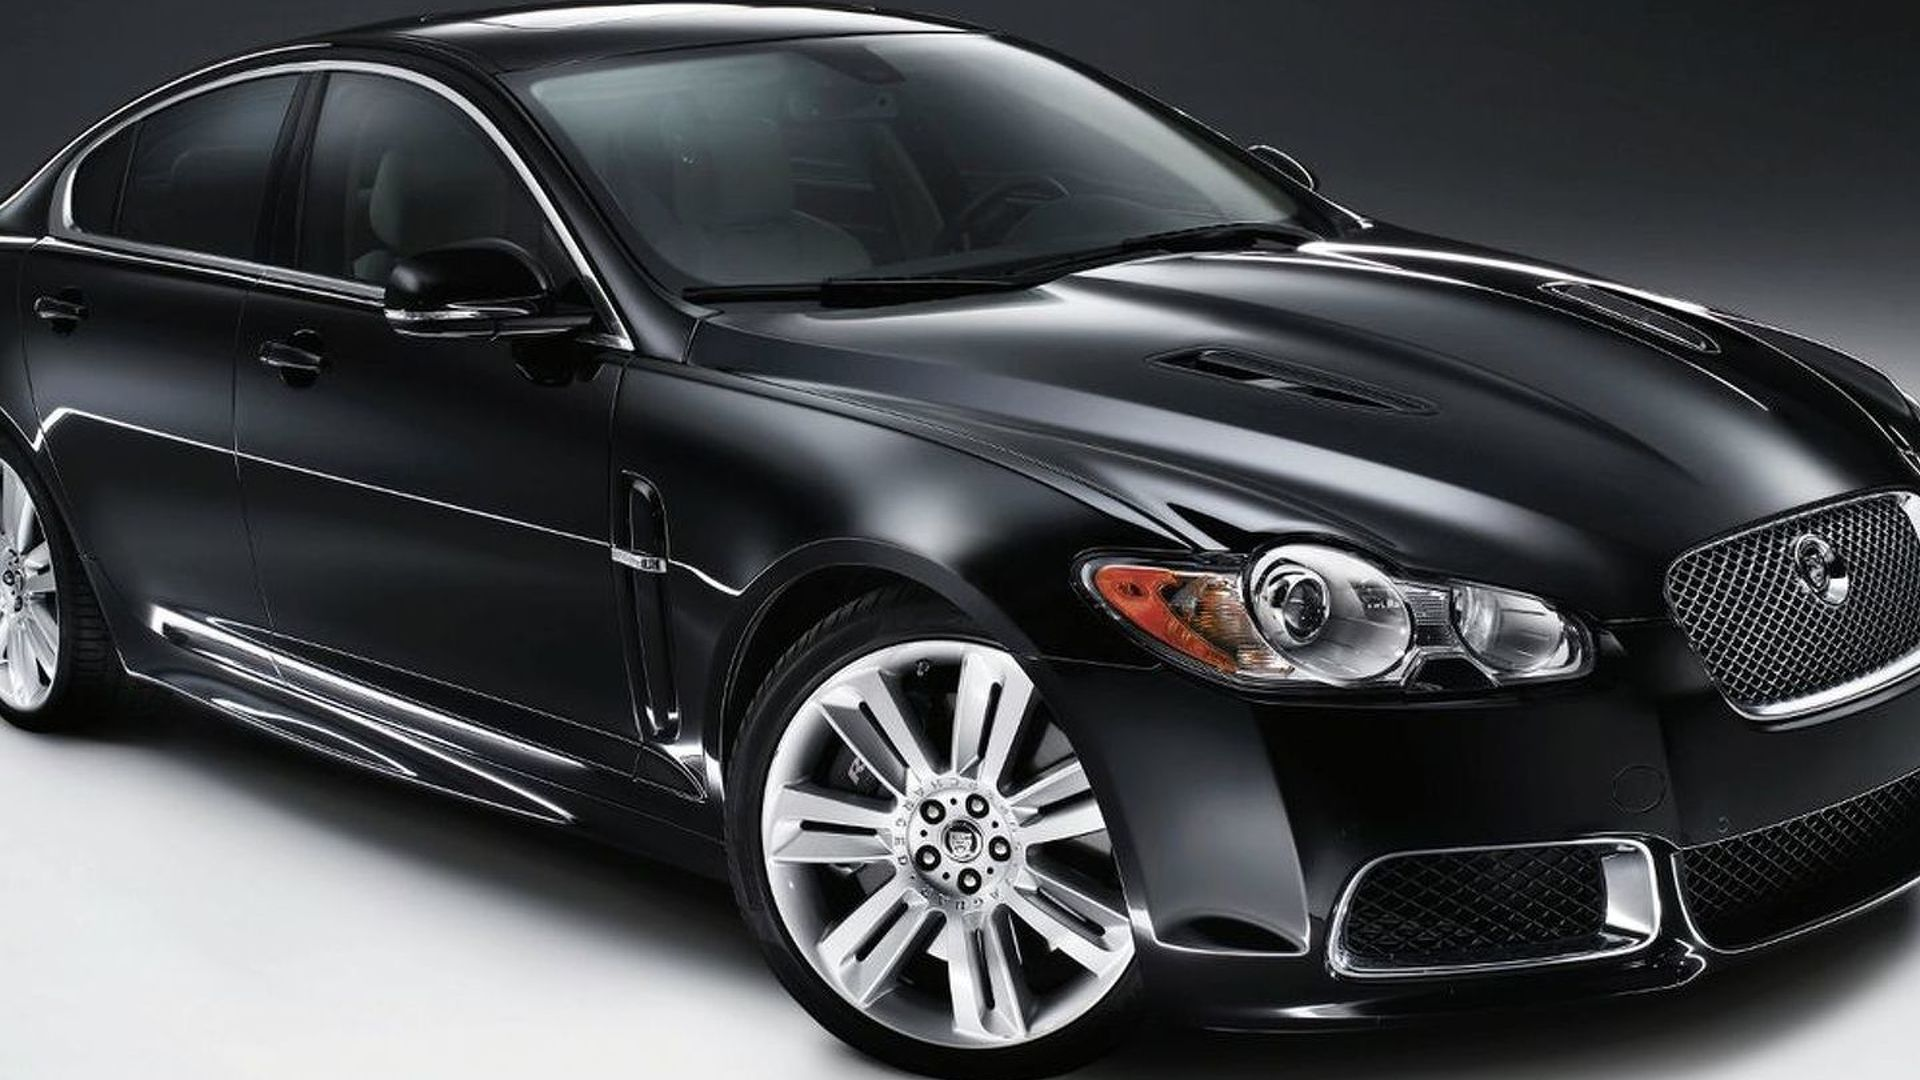 new jaguar xf supercharged model pumped up to 470hp. Black Bedroom Furniture Sets. Home Design Ideas